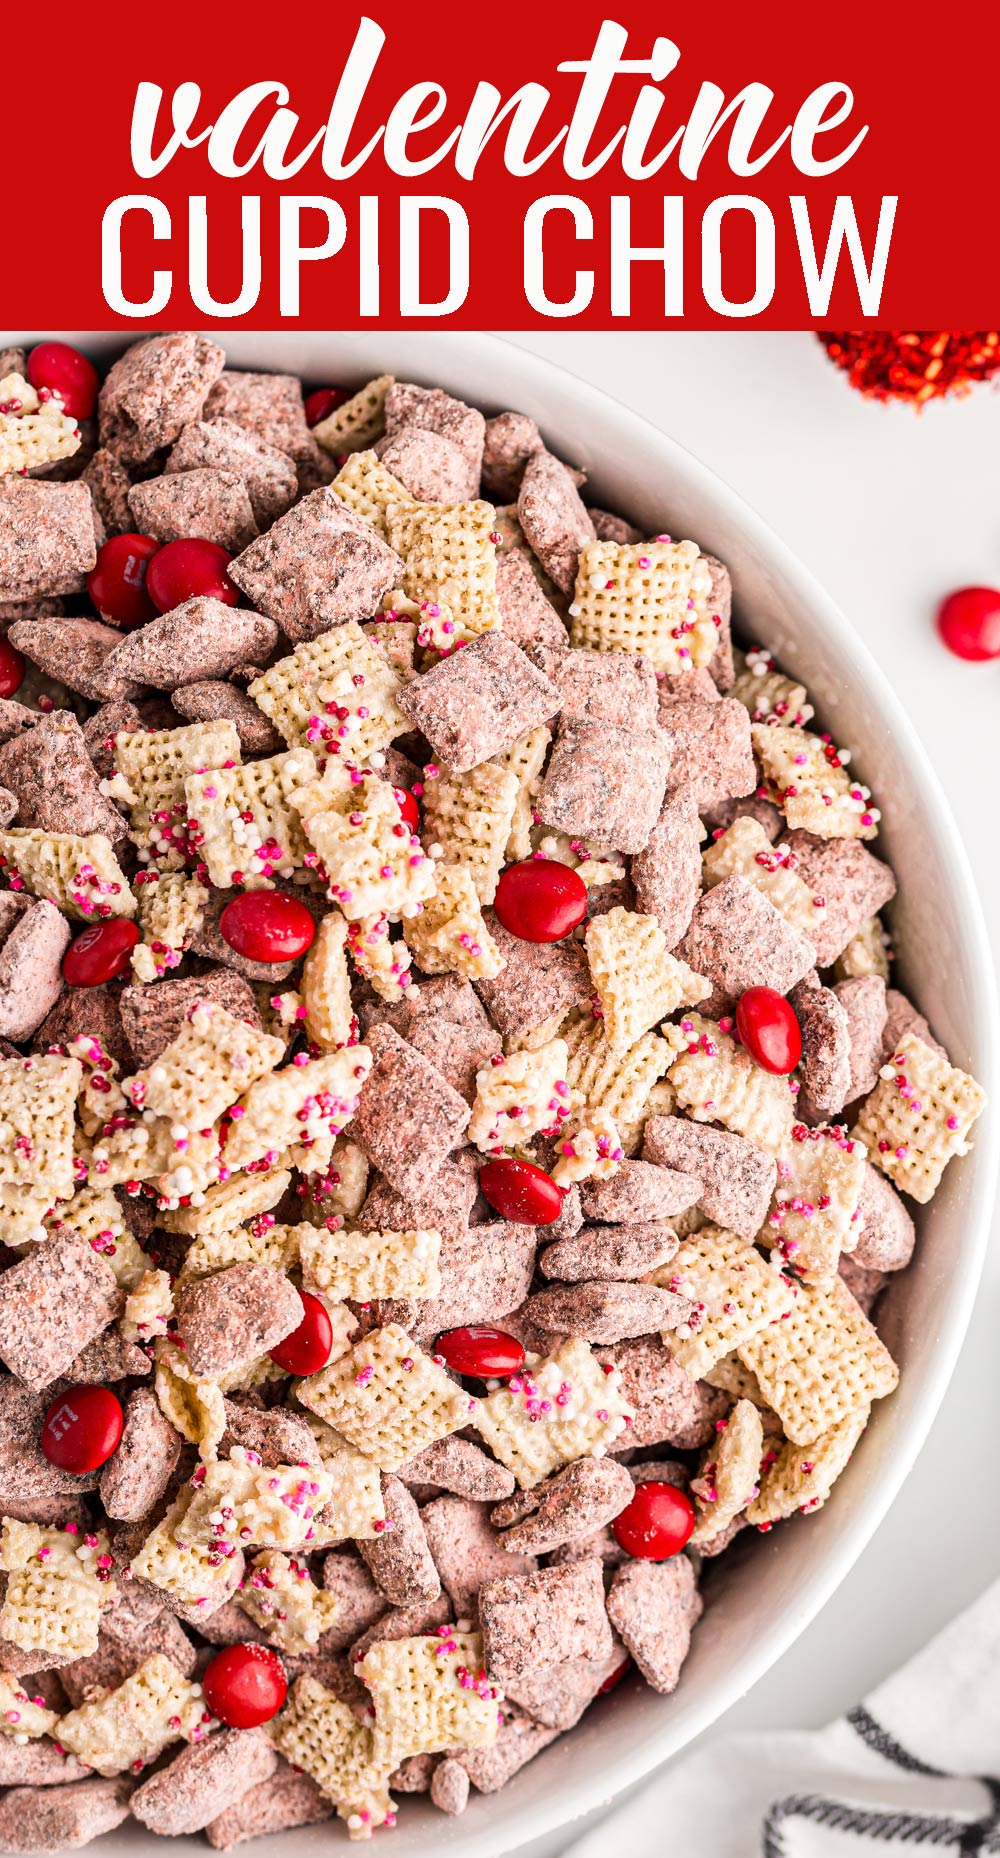 This is not your average puppy chow! Cupid's Chow is loaded with peanut butter, white chocolate and semi-sweet chocolate, sprinkles and M&M's. via @tastesoflizzyt